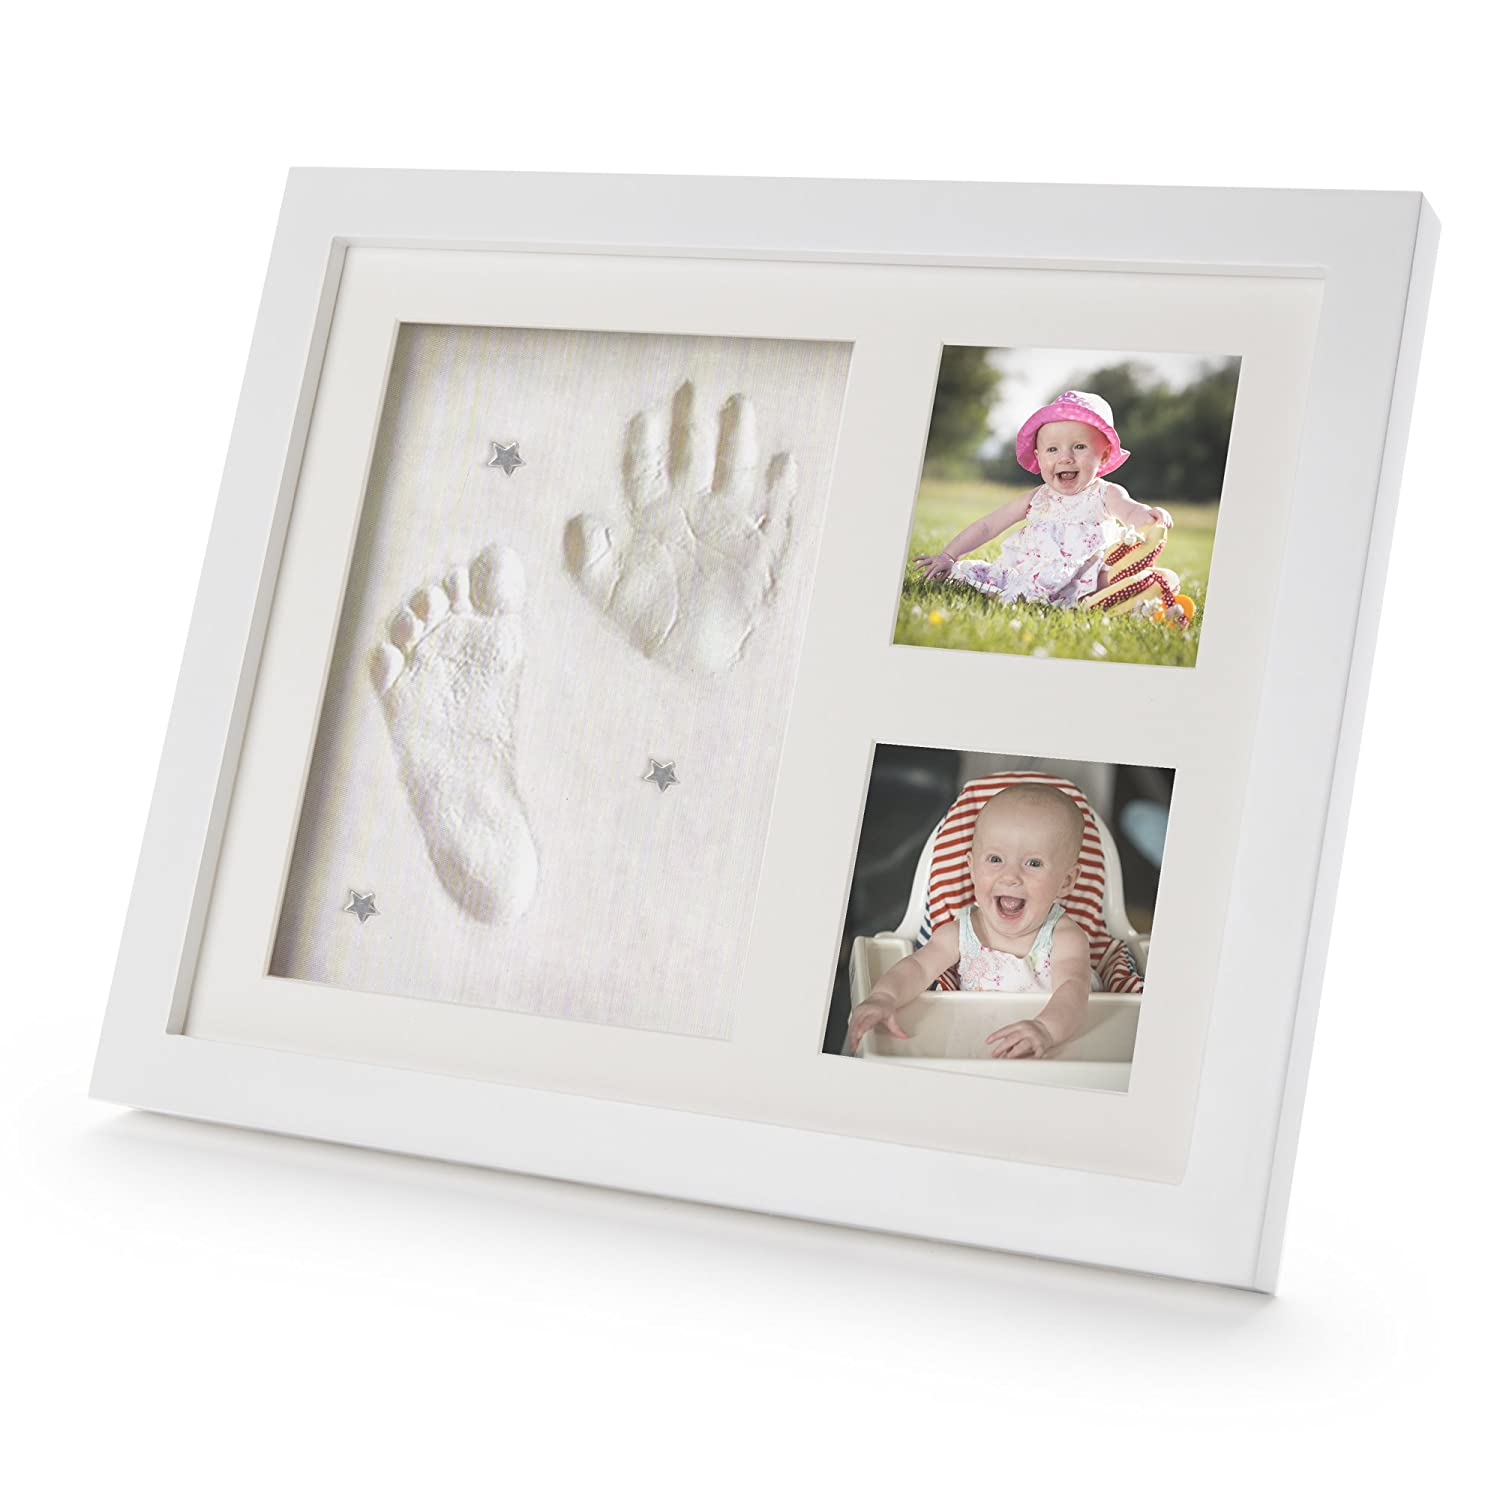 Baby Hand and Footprint Kit - Picture & Photo Frame Gift Set for Boys & Girls 100% Safe. 3 Large Premium Ready Made Clay Bags with FREE Charms & Birth Record for Keepsake Registry Christening Newborns Baby Shower & Birthdays. A Beautiful H